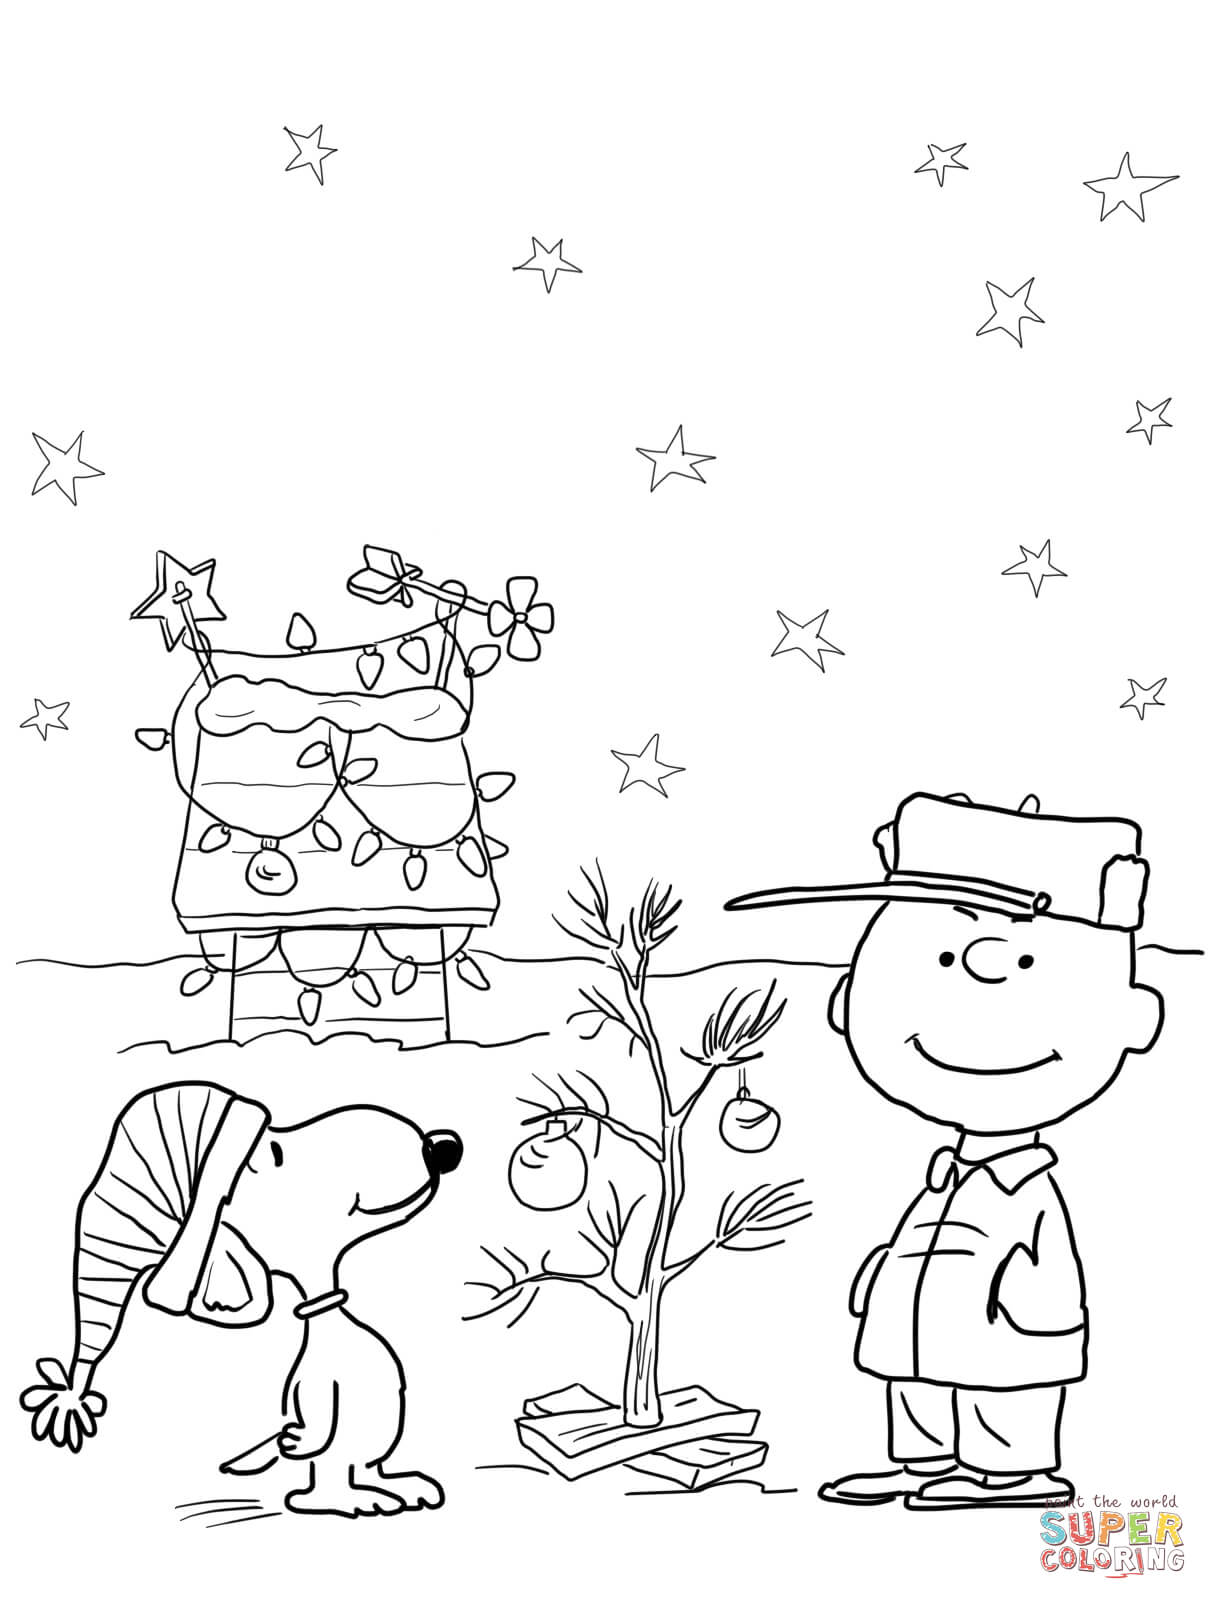 Christmas Coloring Online Free Games With Charlie Brown Page Printable Pages